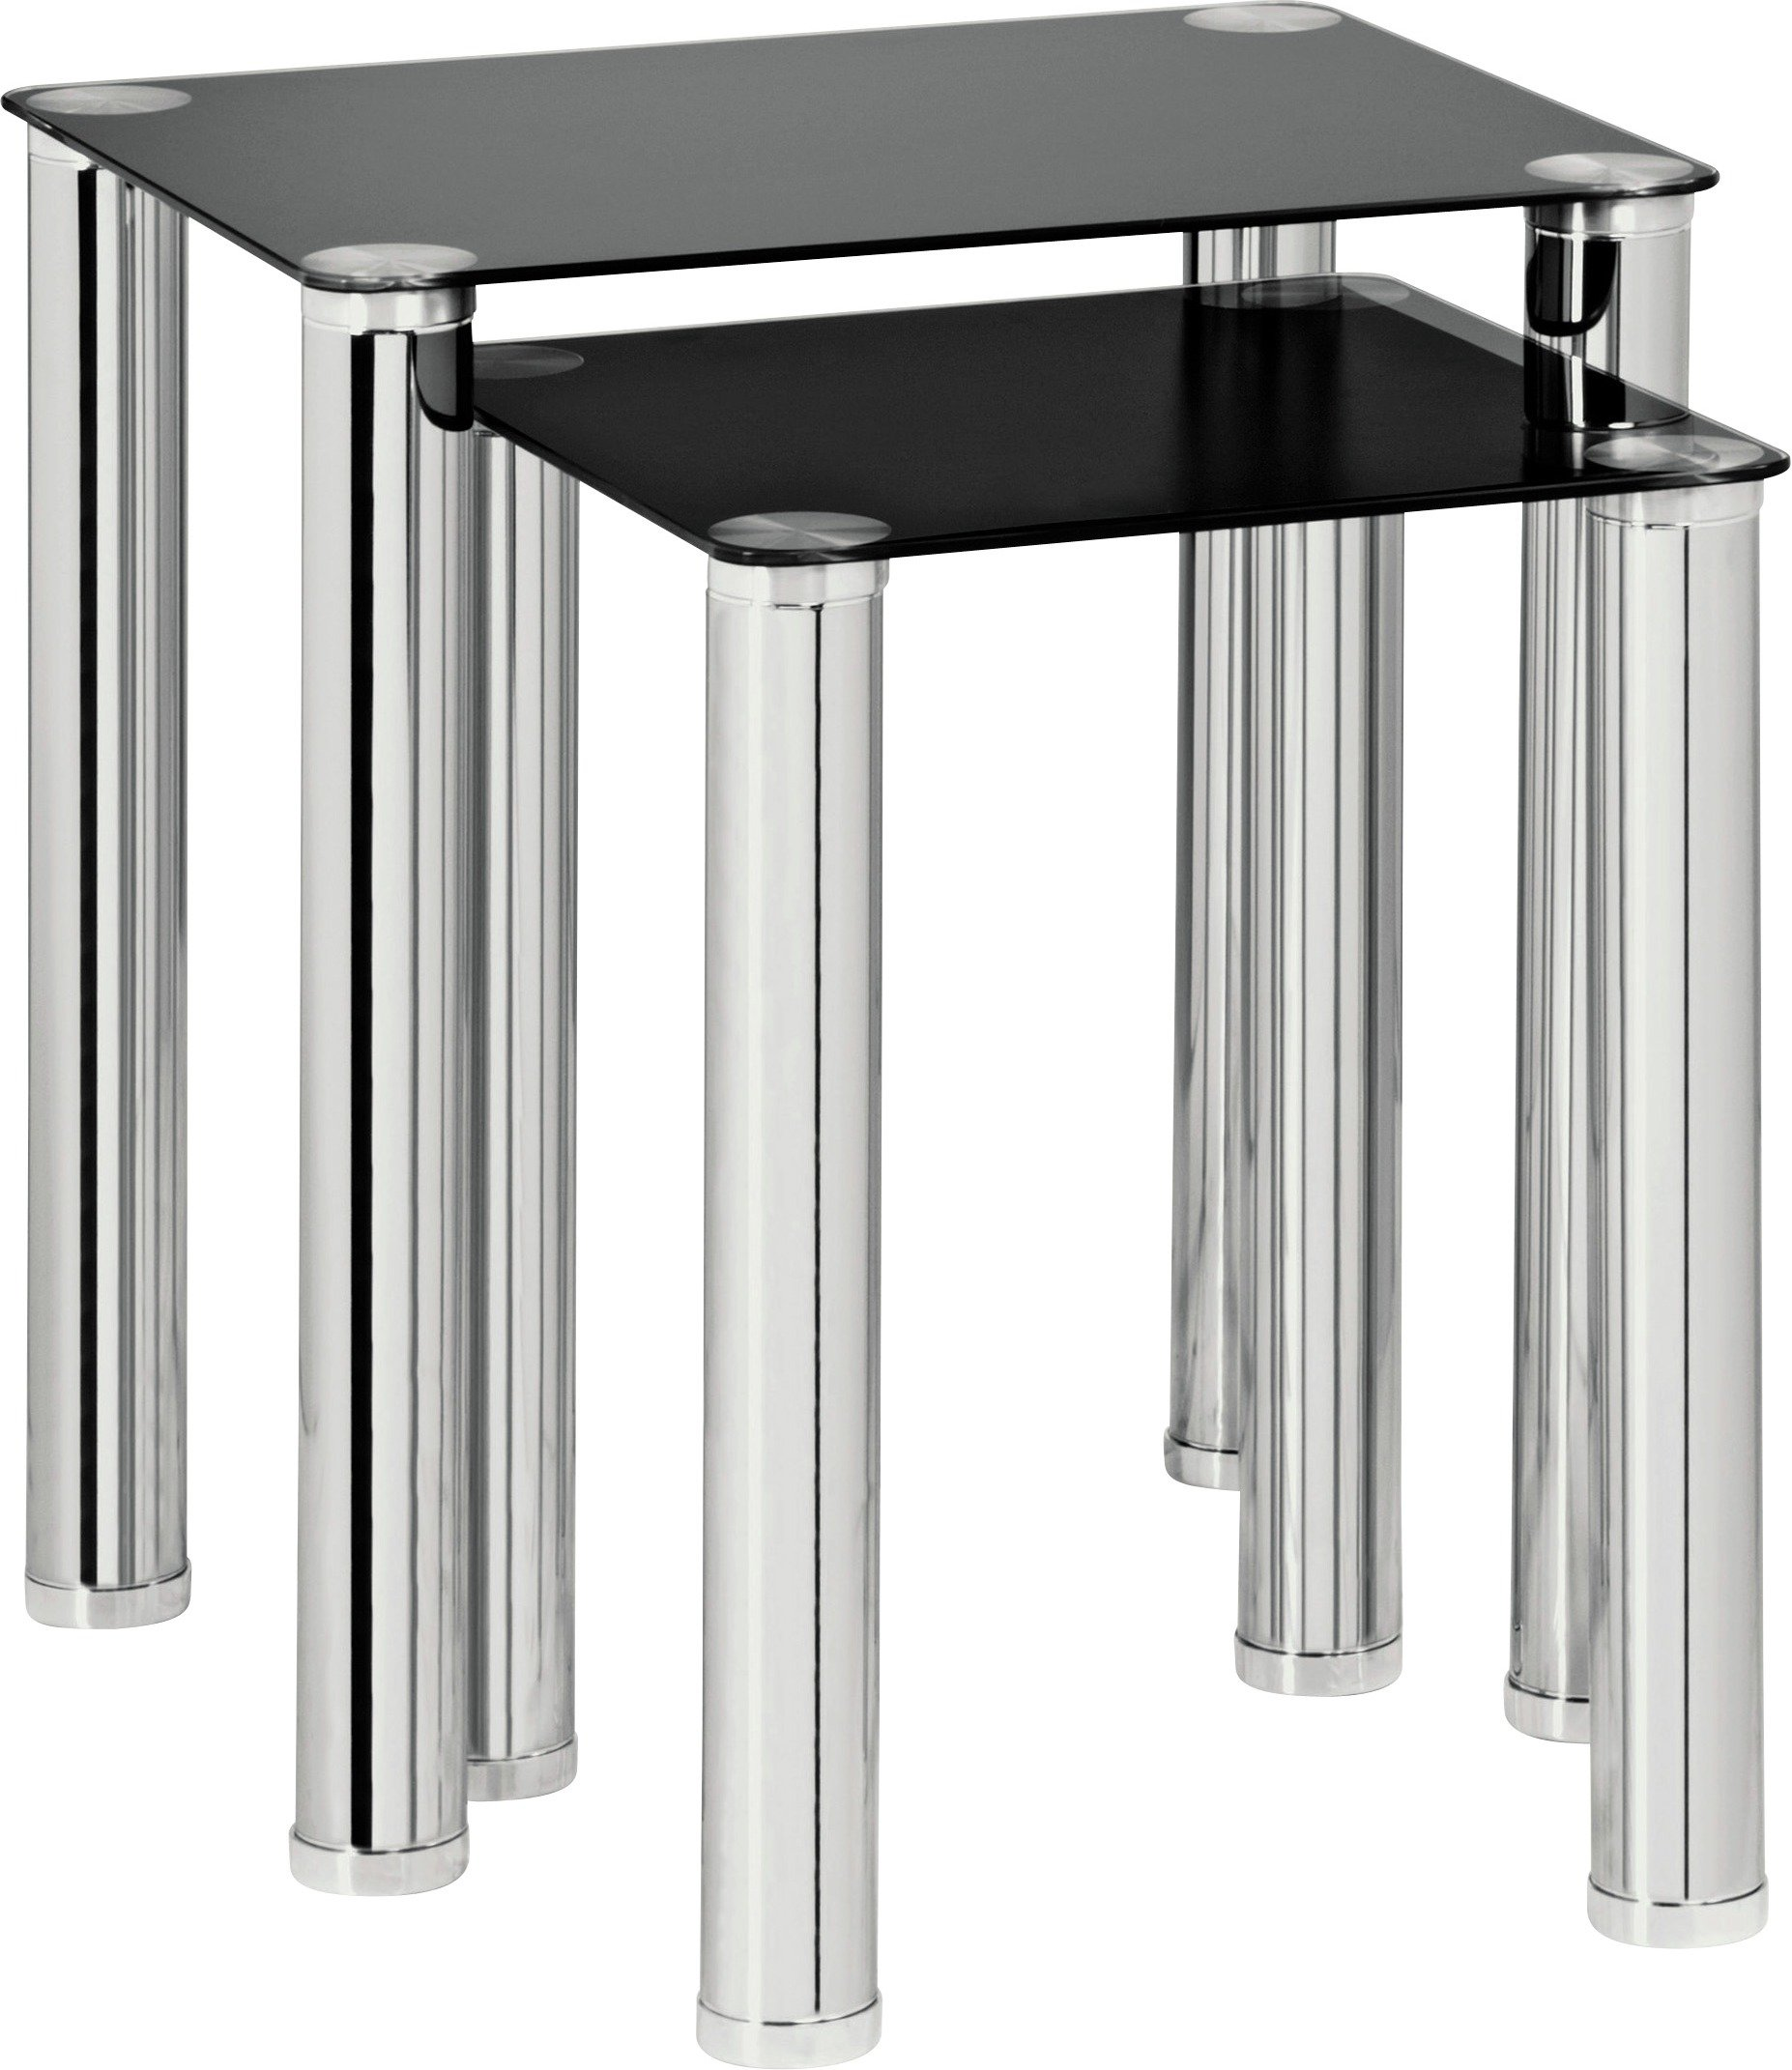 SALE On Argos Home Matrix Nest Of 2 Tables Black Glass